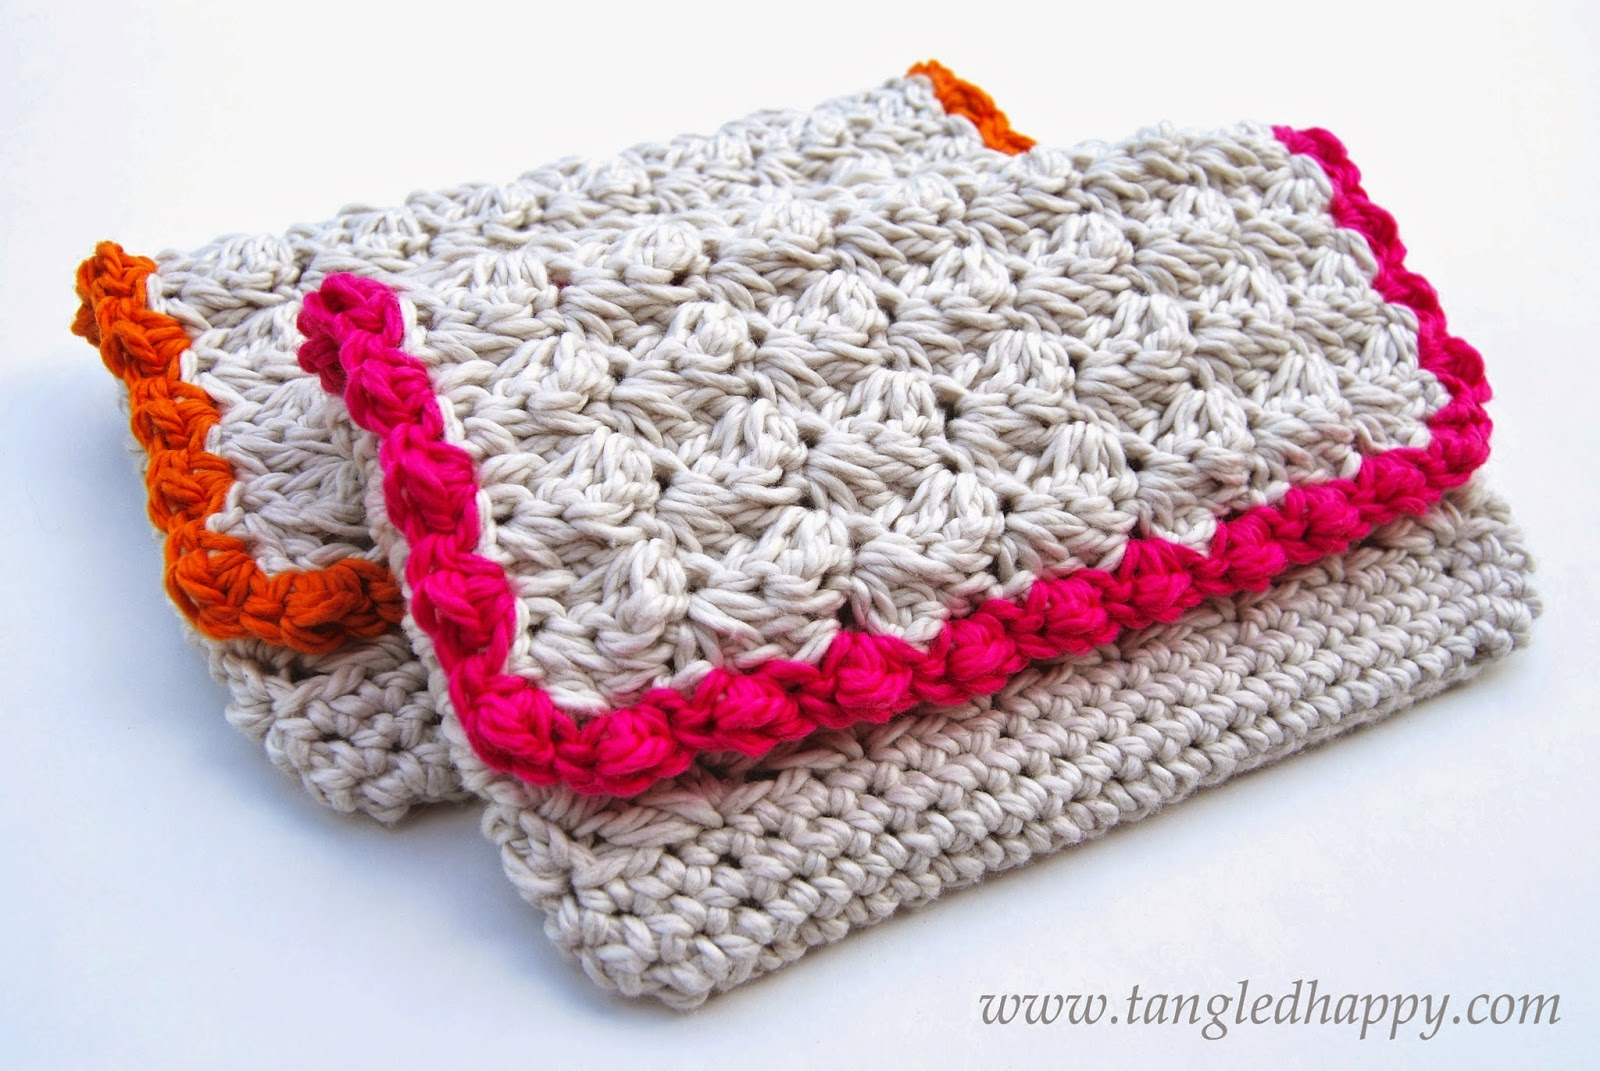 Crochet Clutch Pattern Free : ... happy: DIY Anthropologie Inspired Summer Clutch {Free Crochet Pattern